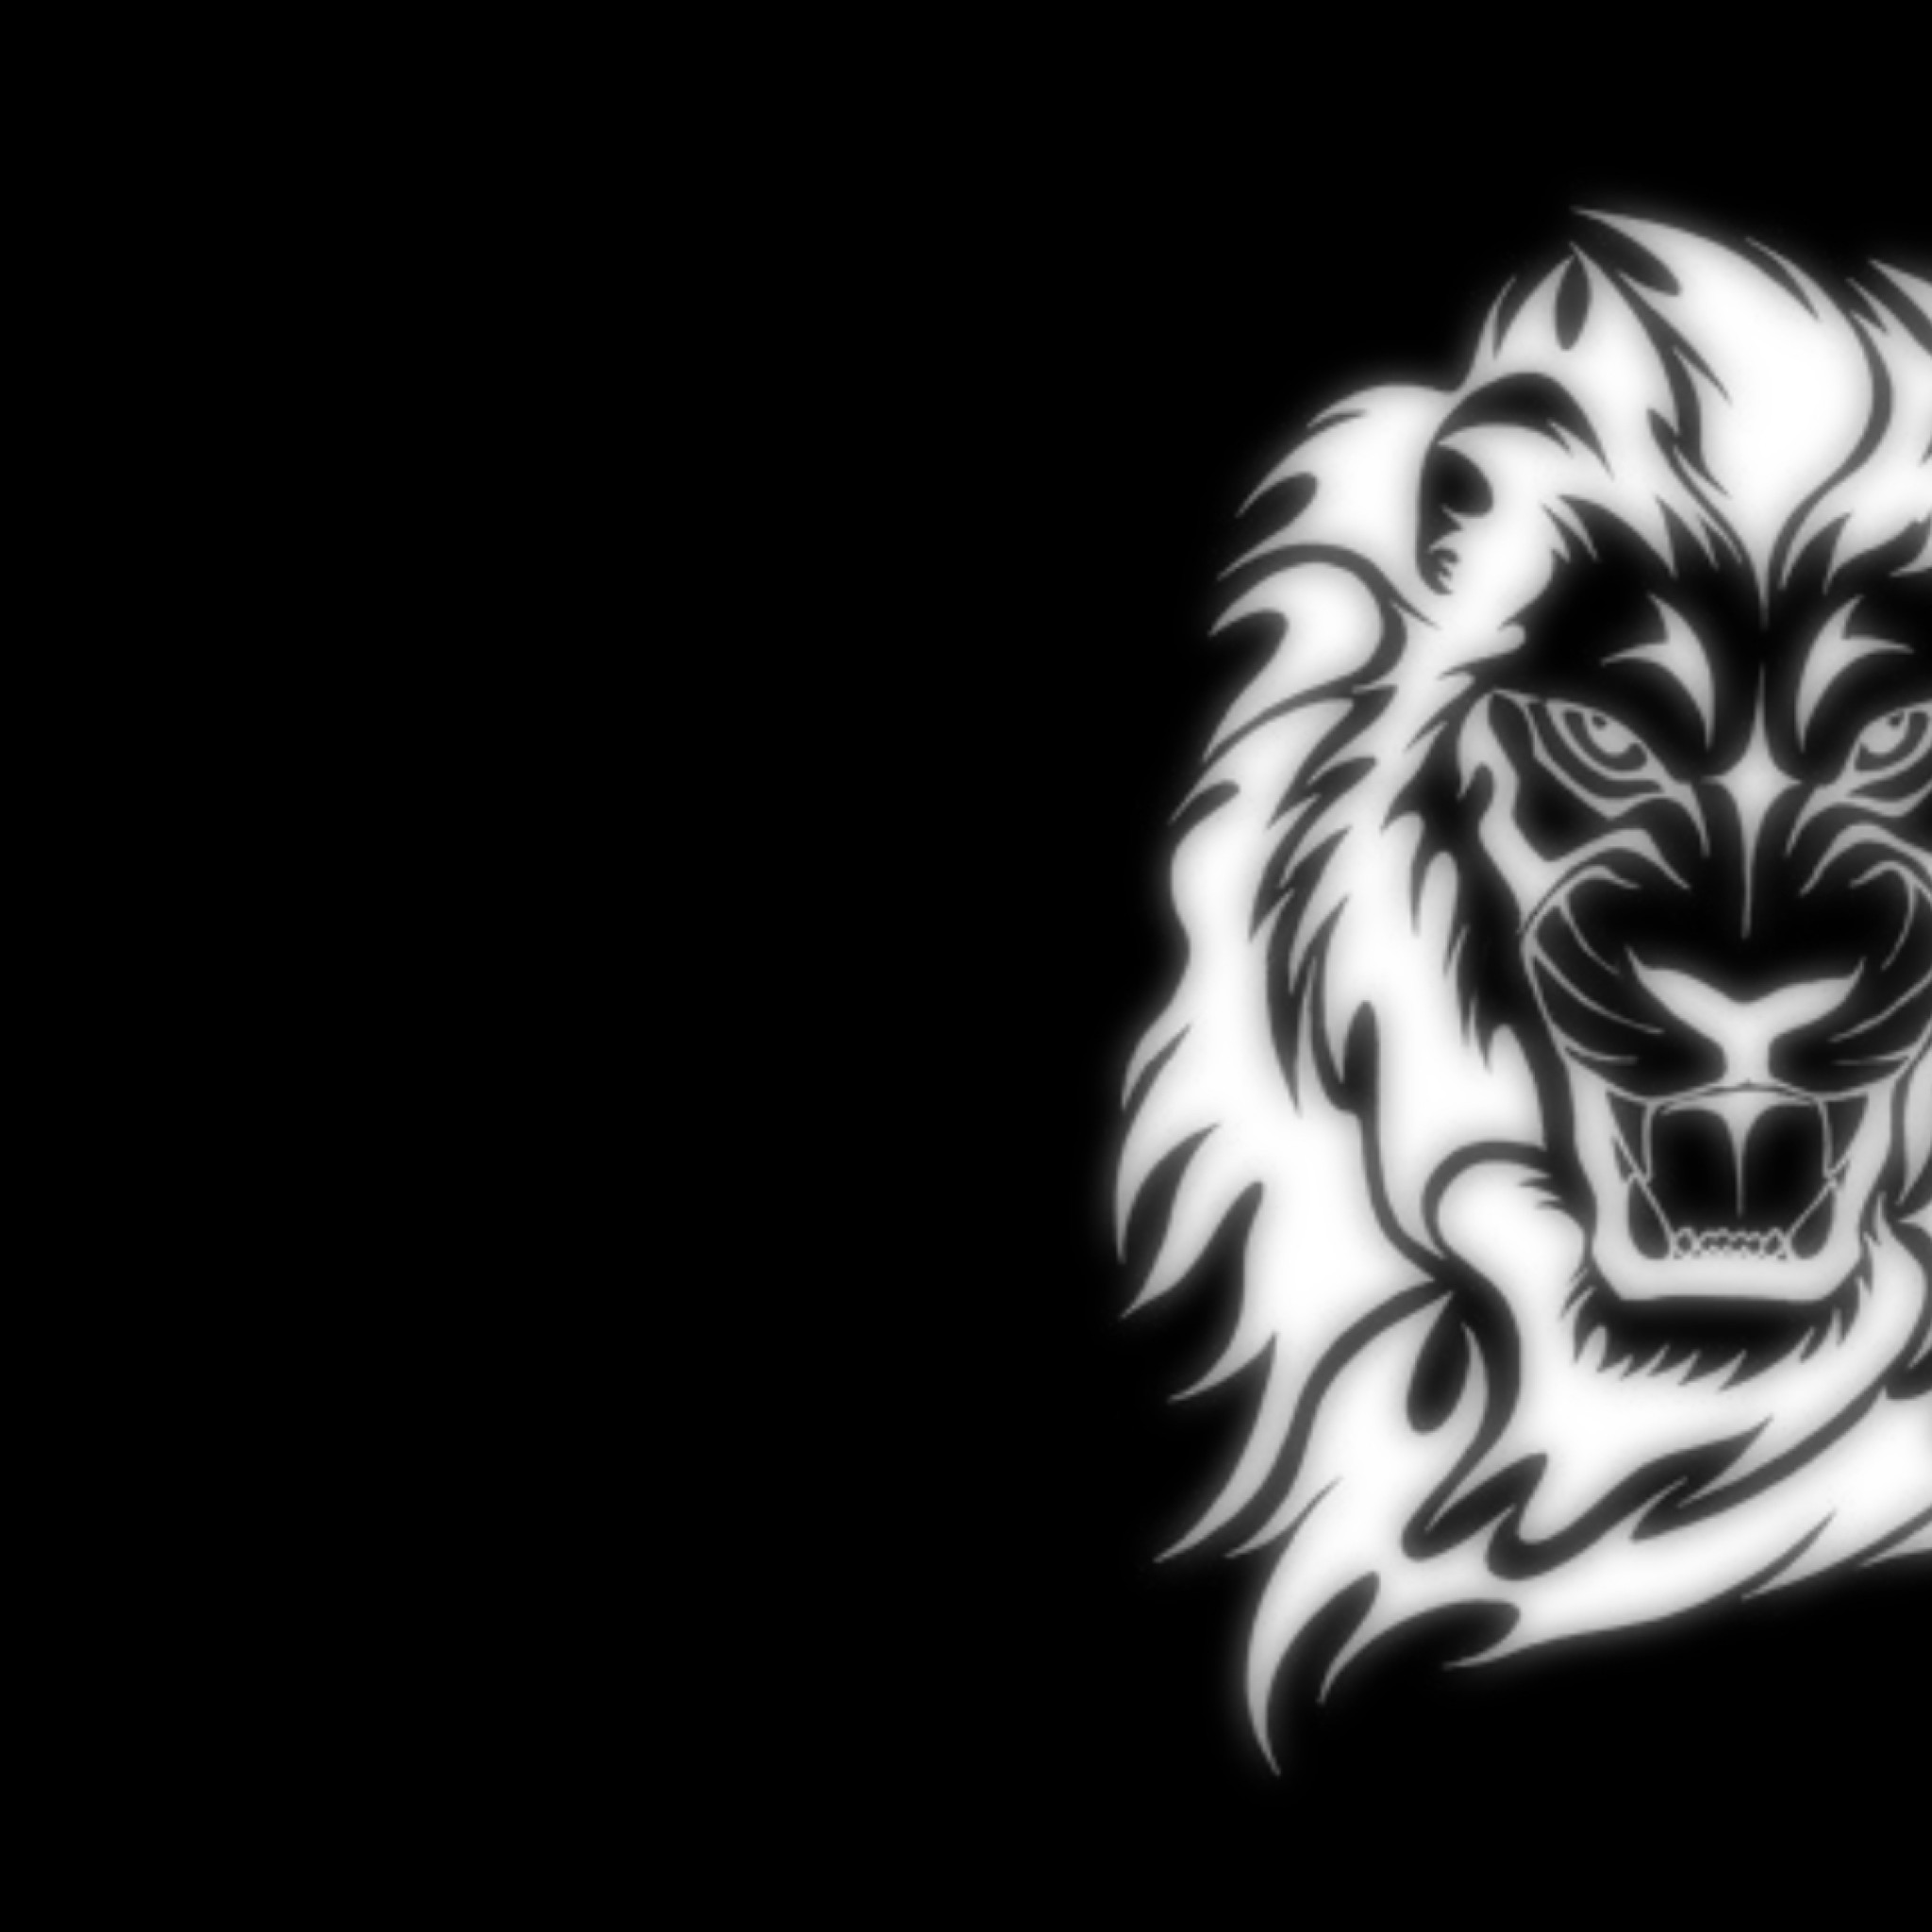 White Lion Wallpaper 65 Pictures